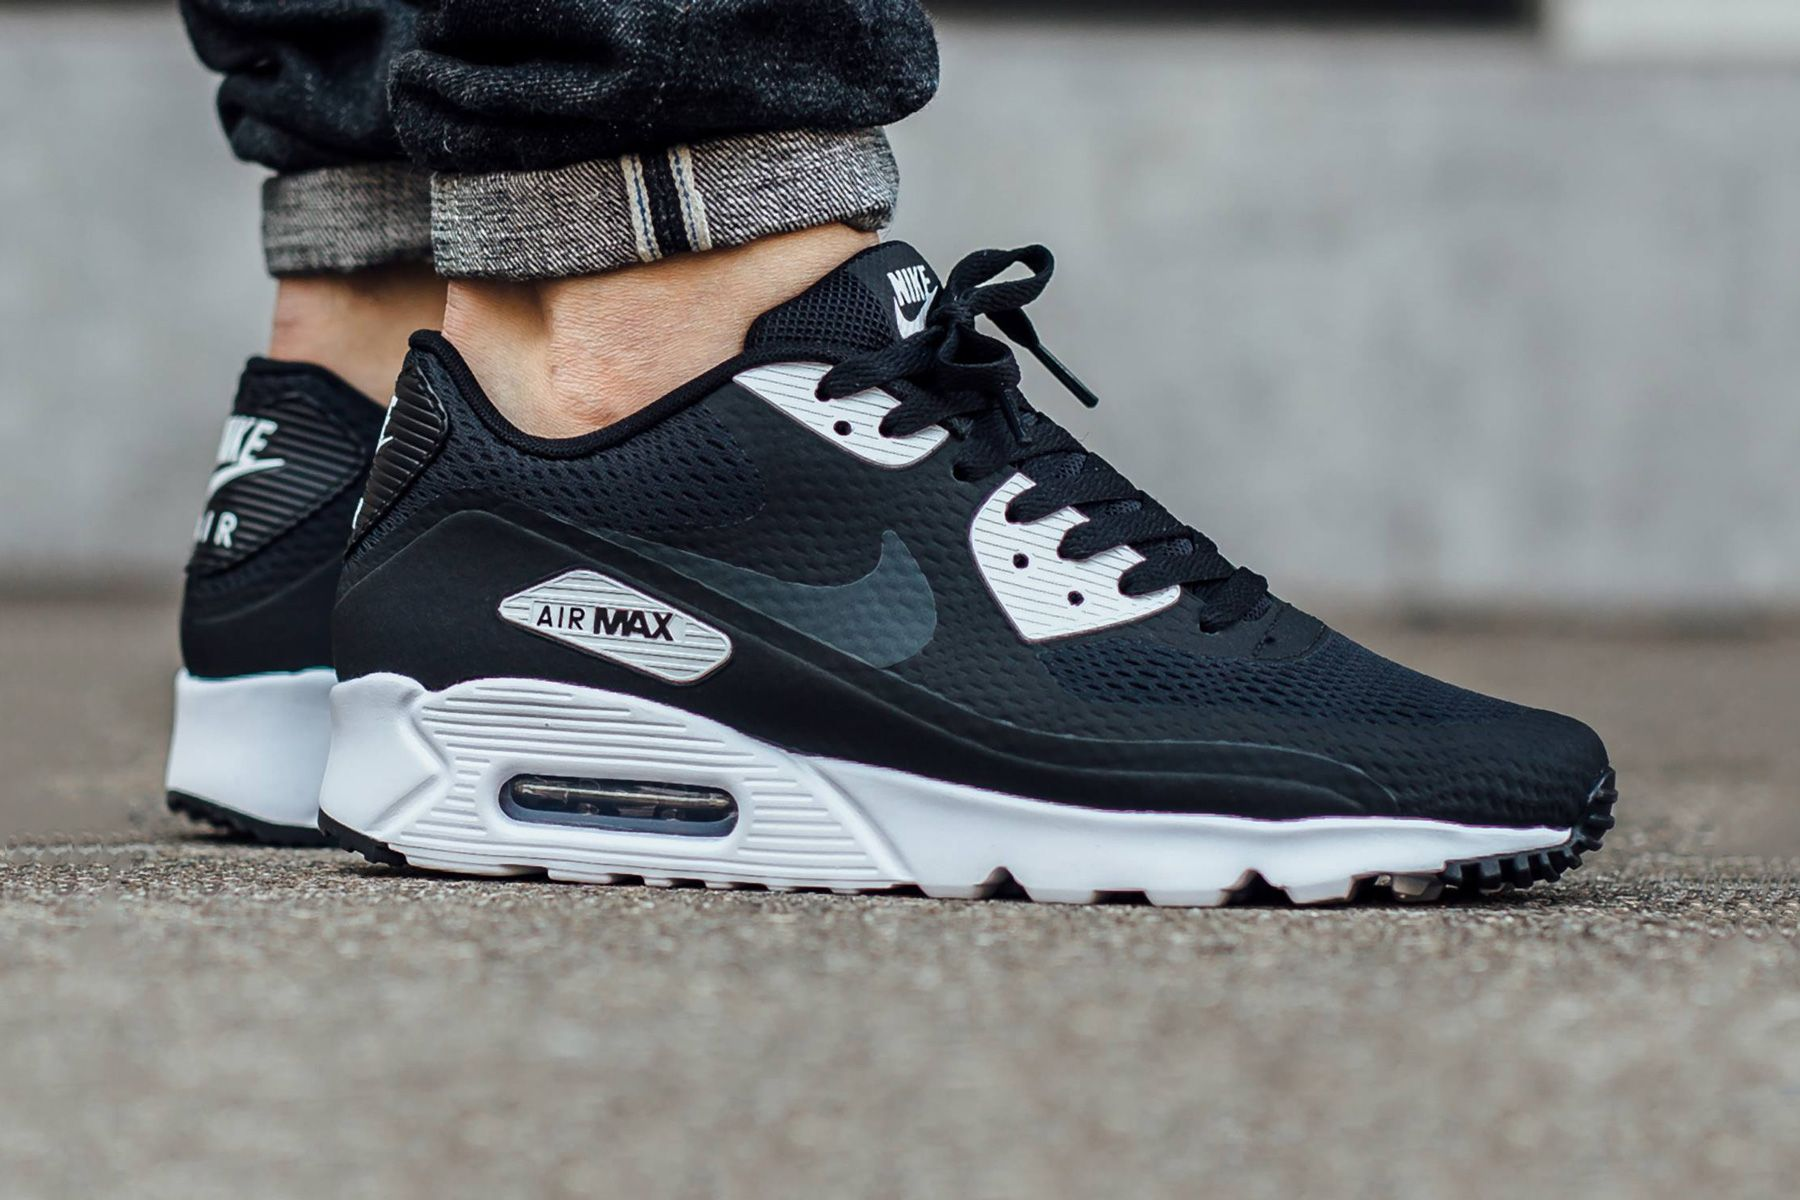 119c8deaae Nike Air Max 90 Ultra Essential